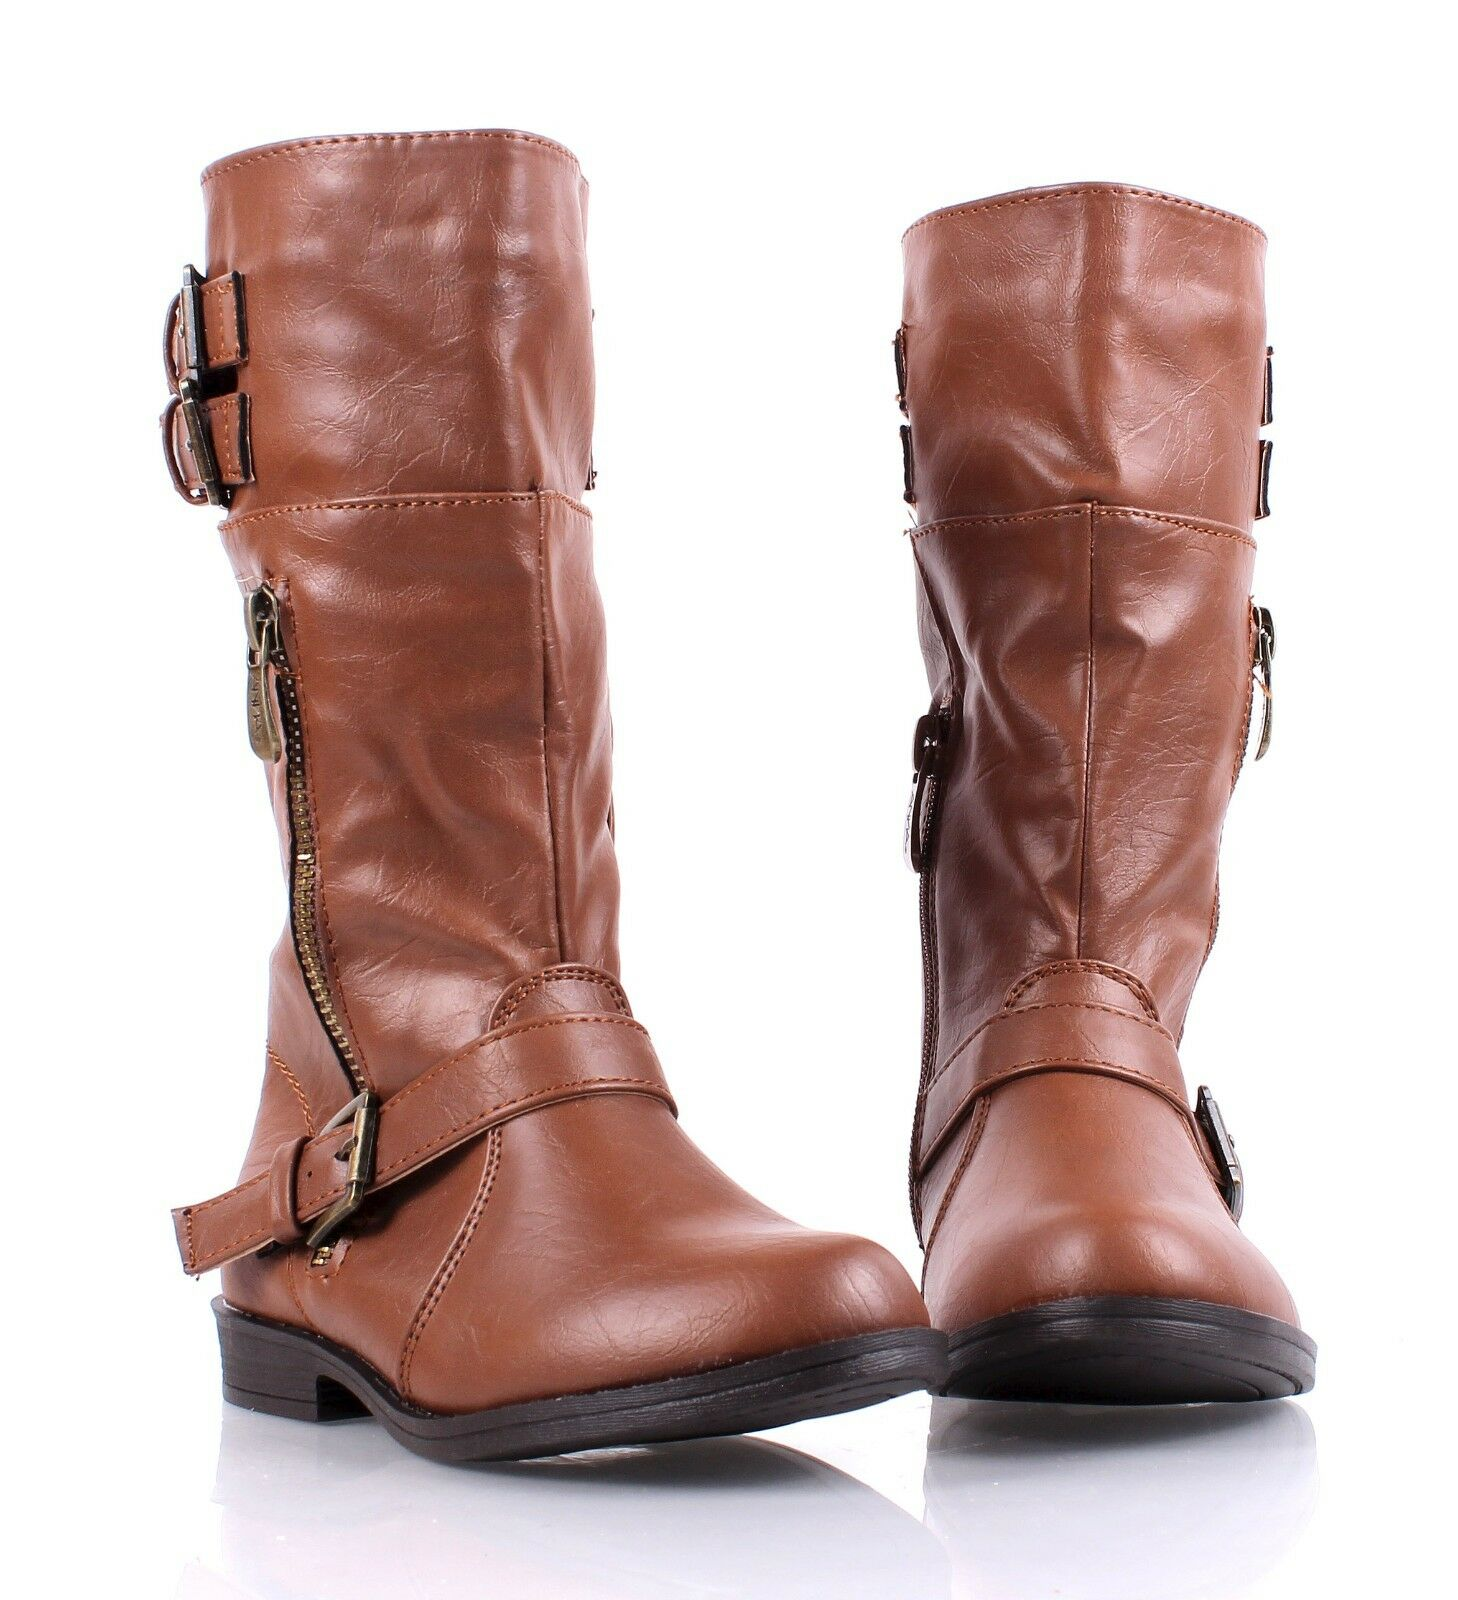 Faux Leather Cute Girls Military Mid Calf Combat Boots ...